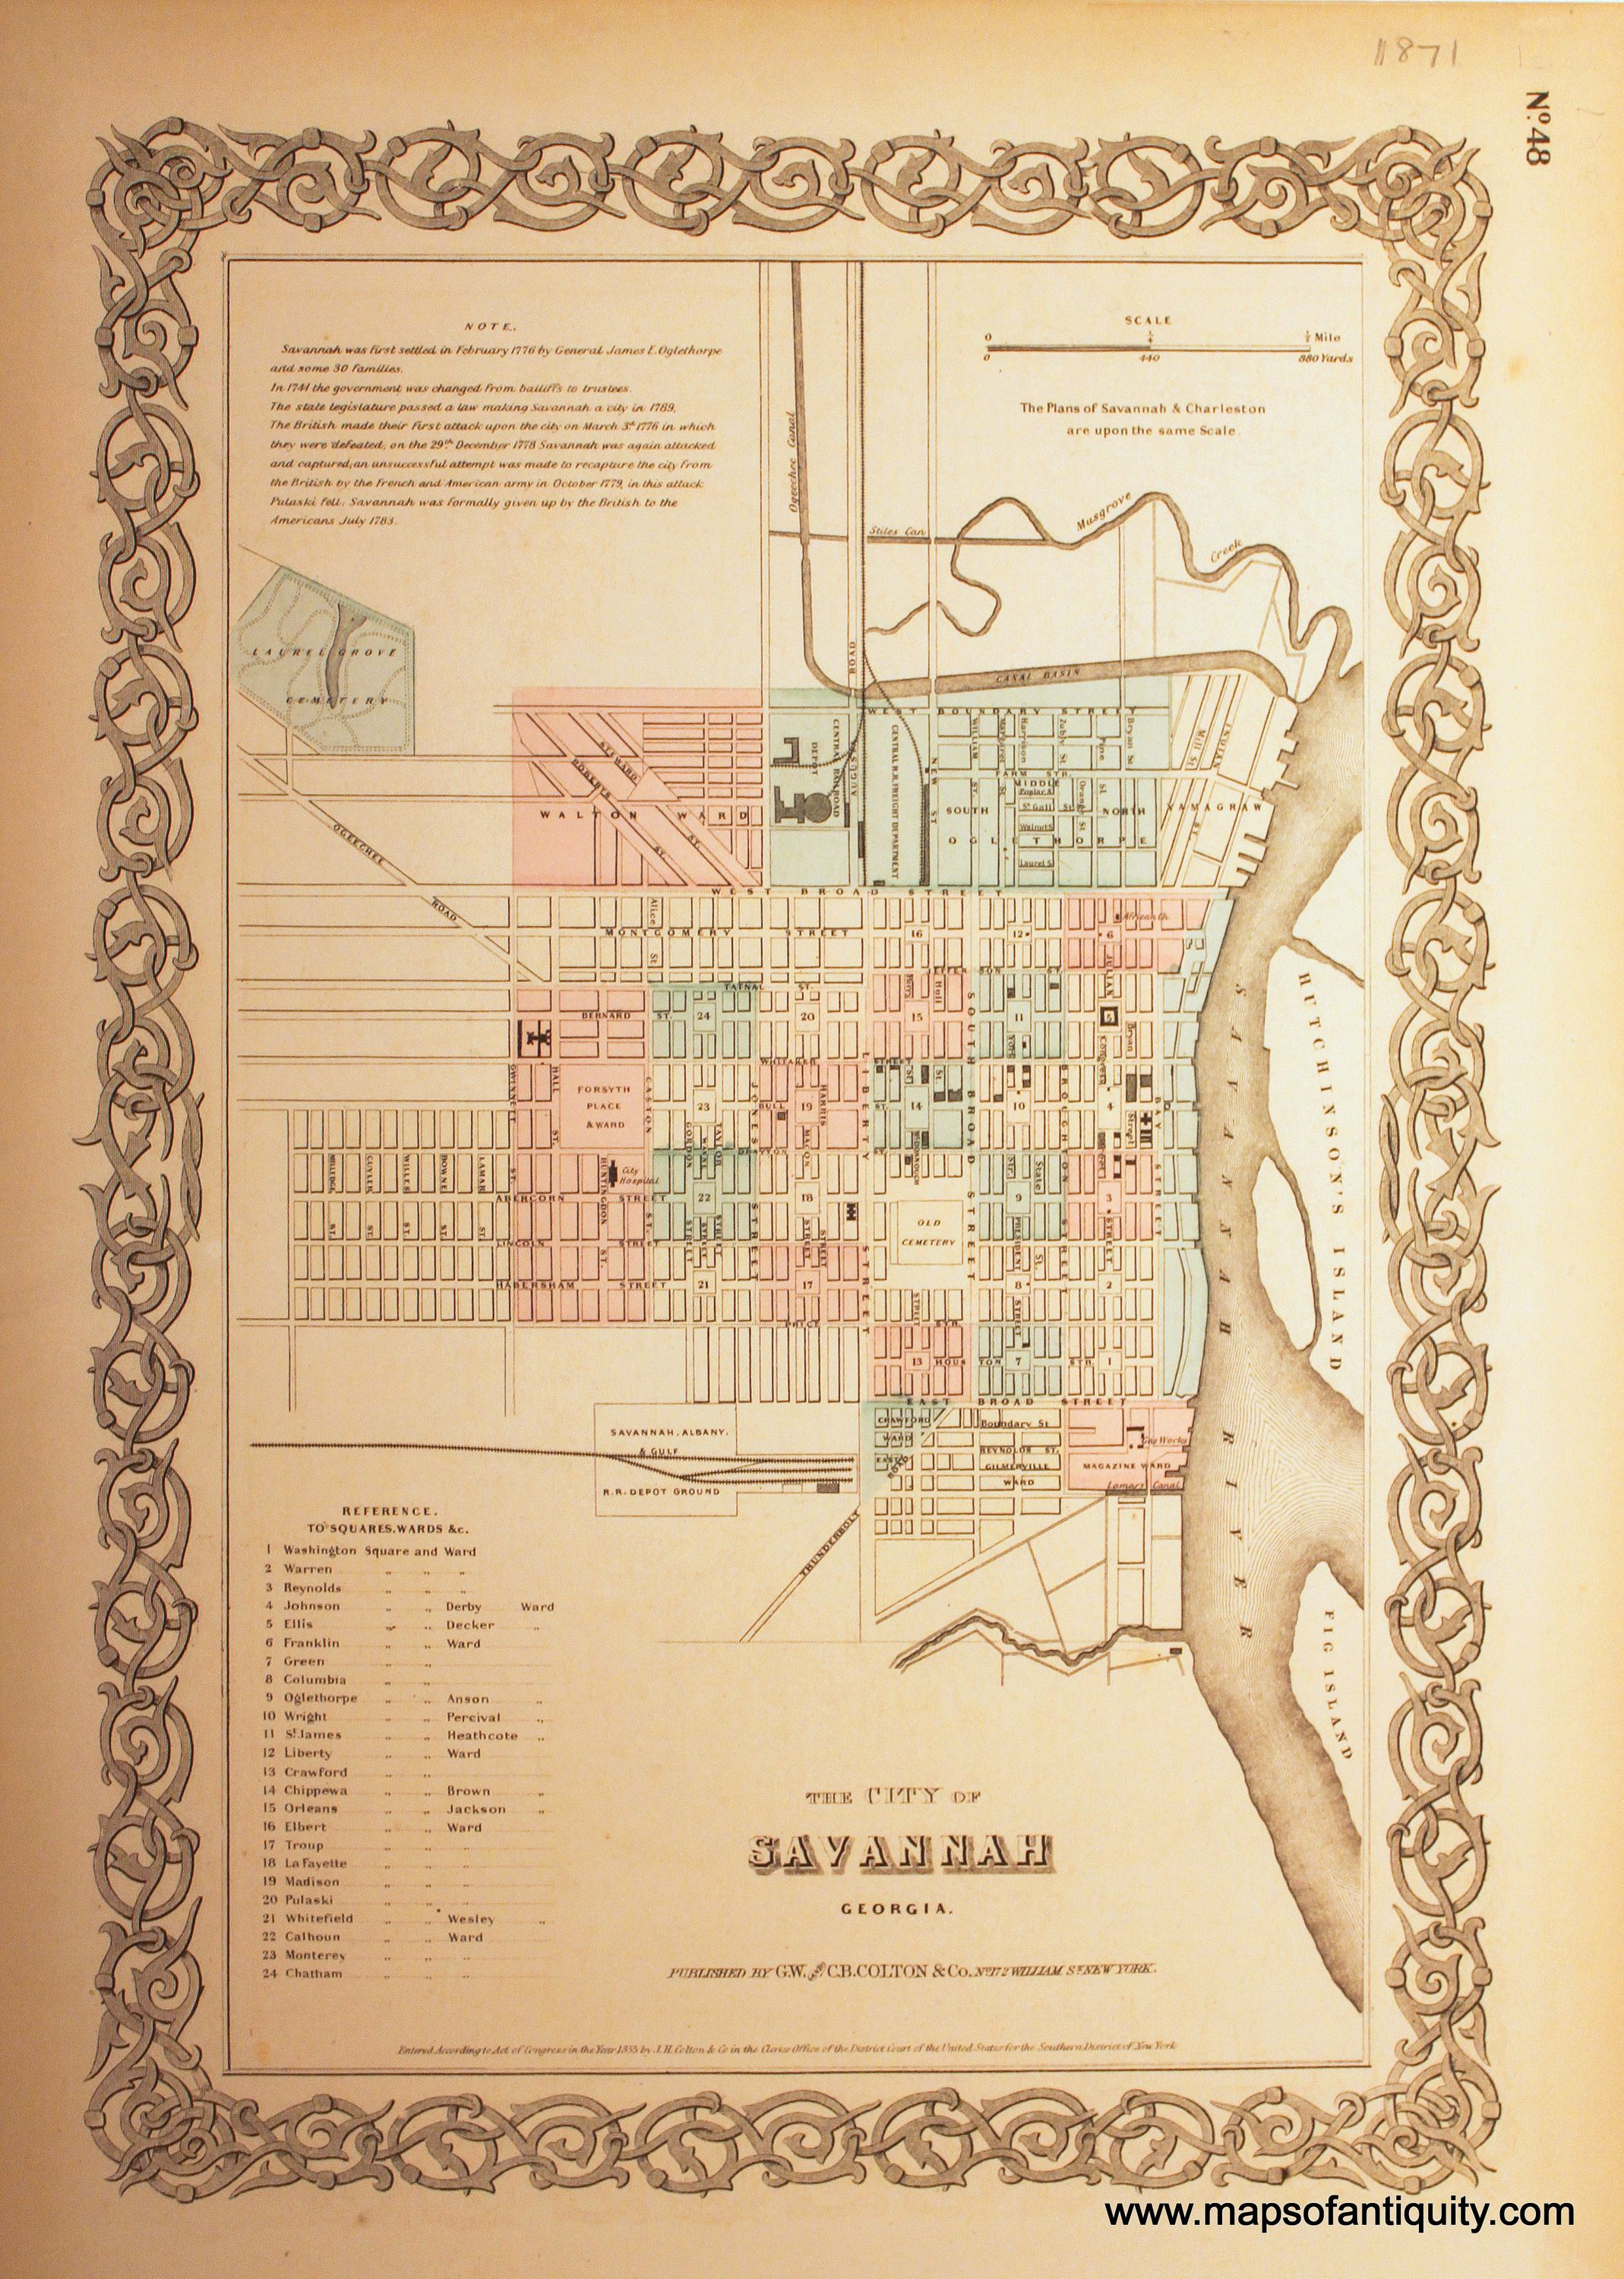 The City of Savannah Georgia Reproduction Antique Maps and